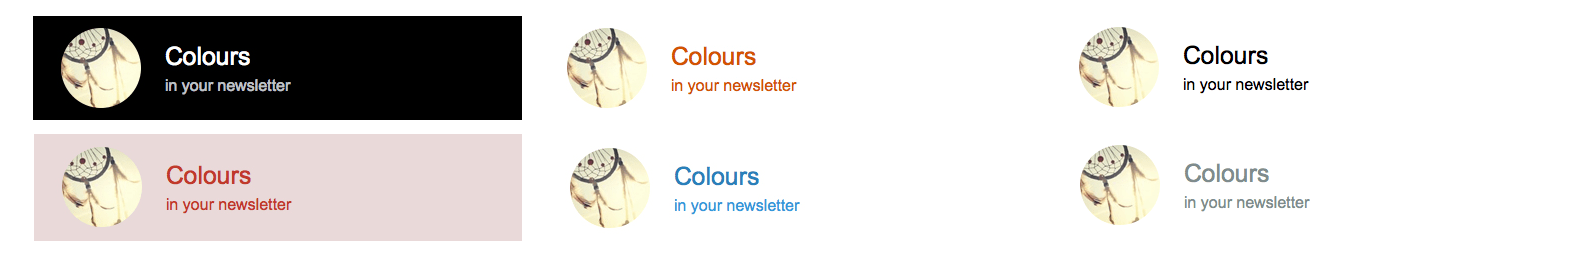 text colours for email newsletter